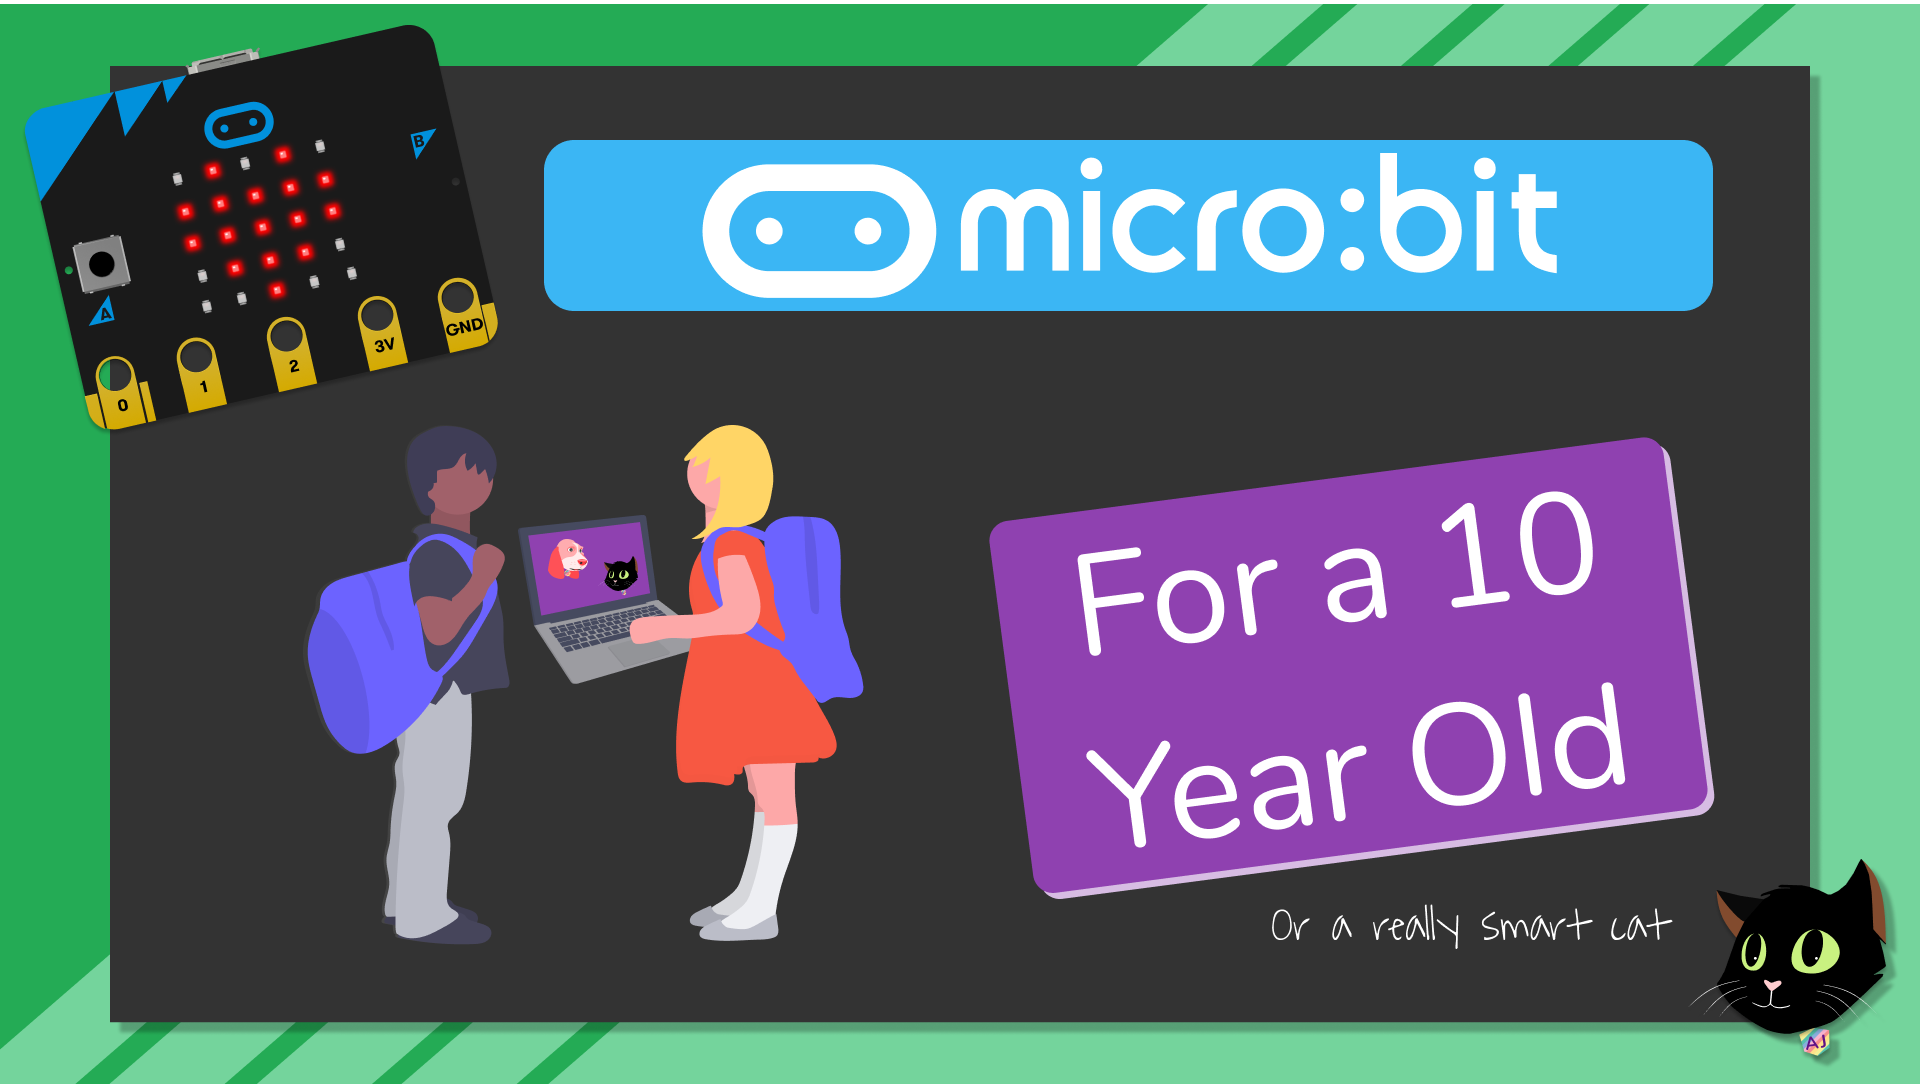 Microbit for a 10 Year Old